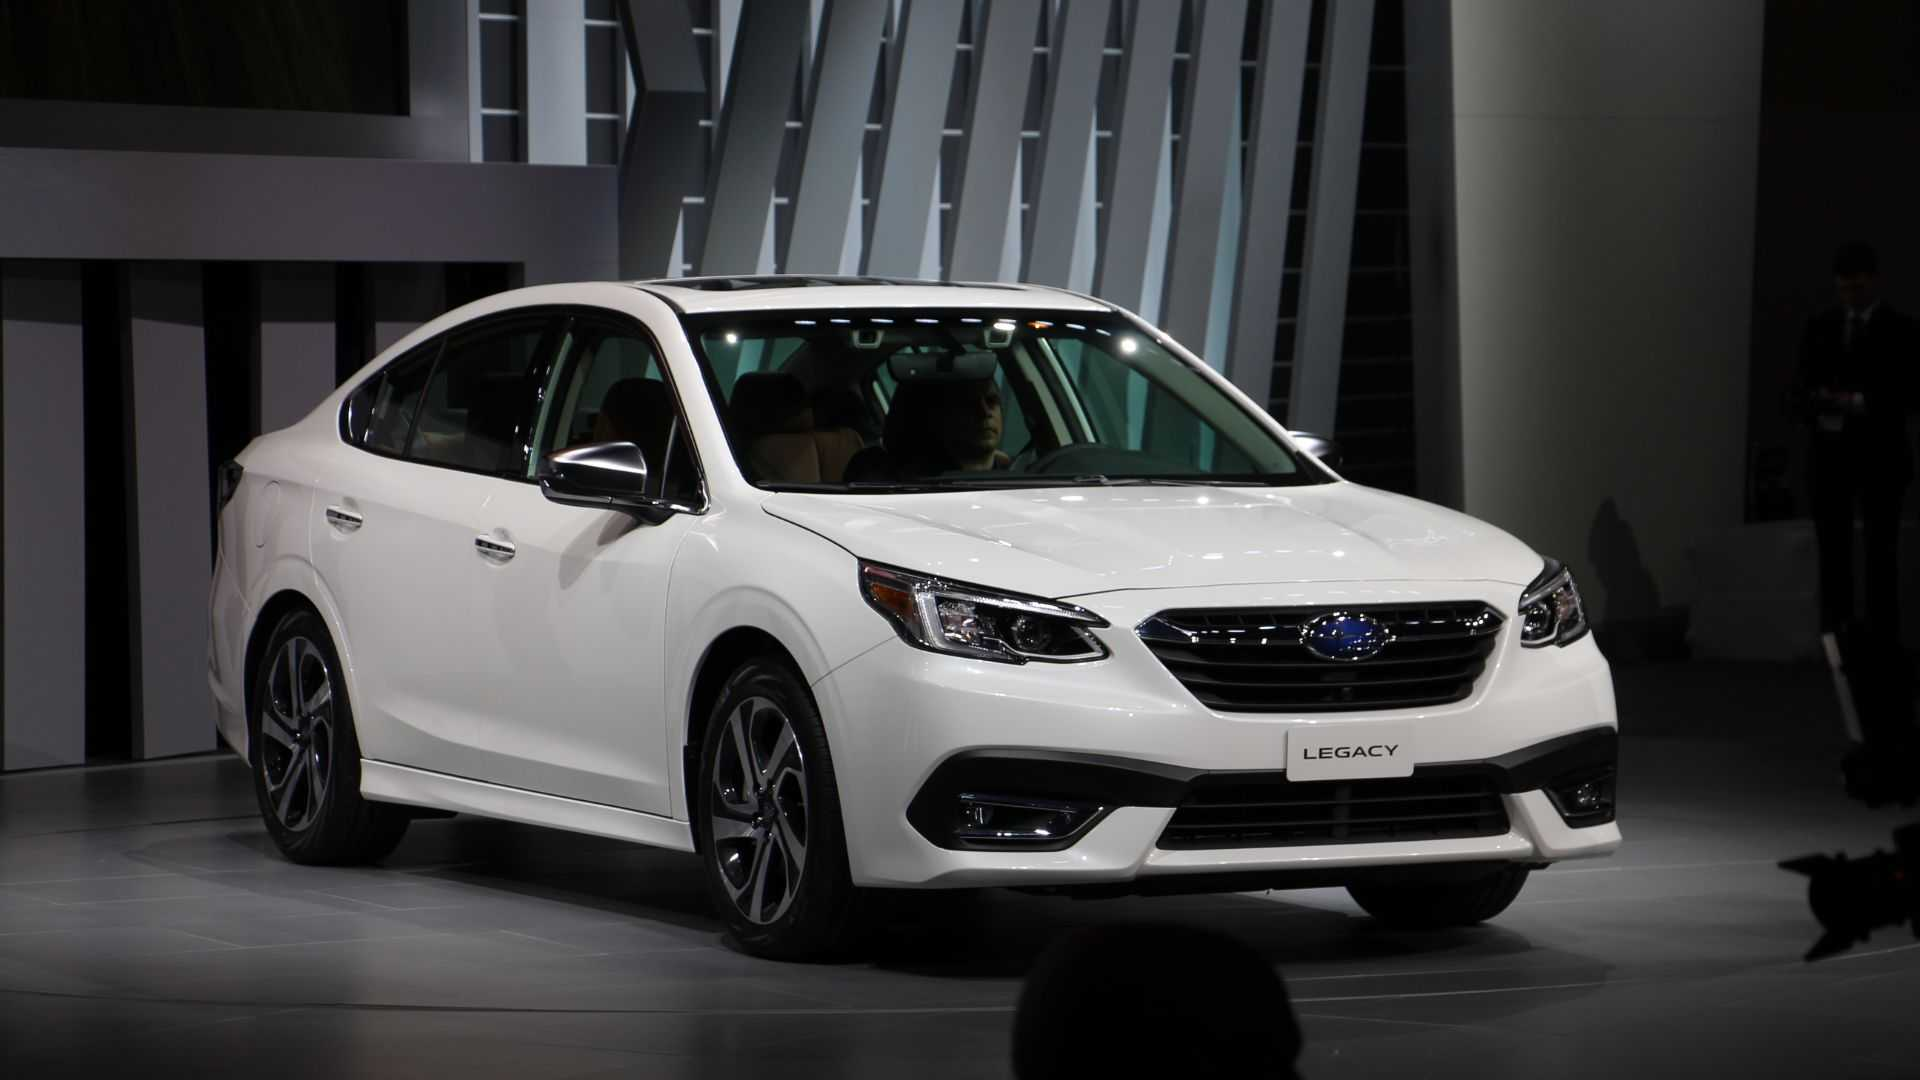 37 New 2020 Subaru Liberty Picture